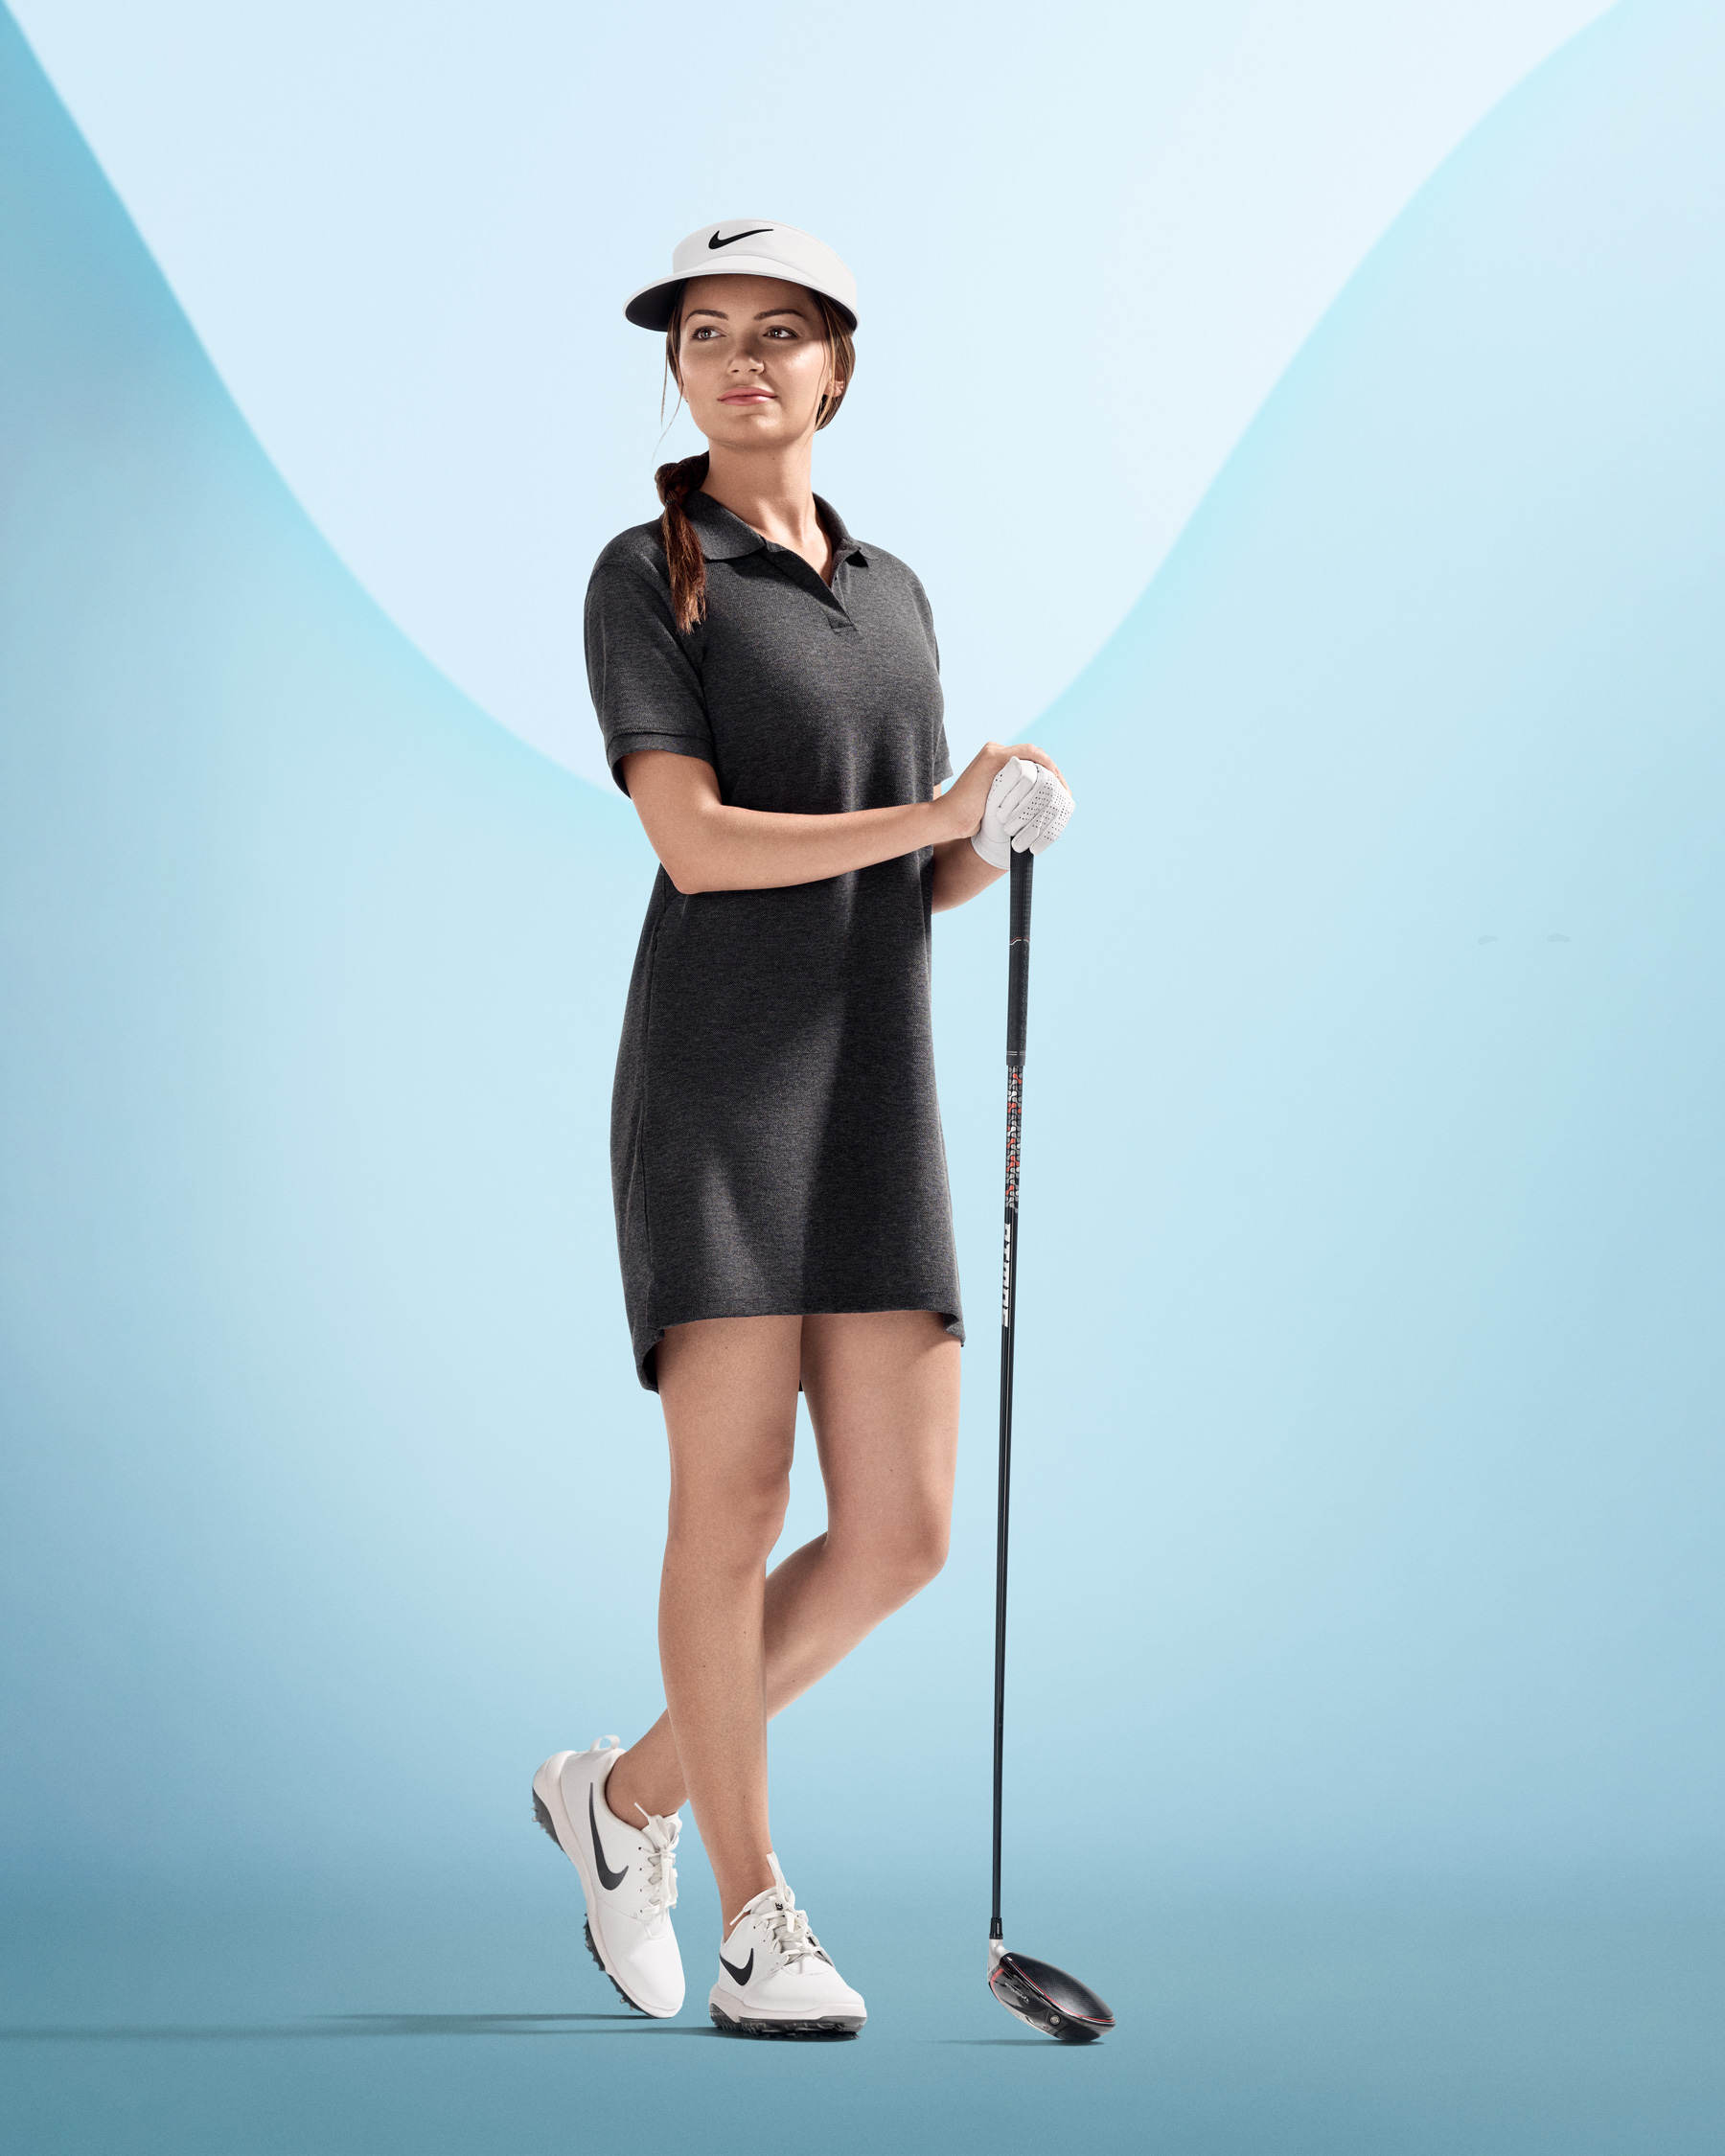 Nike Golf  - Stephen Denton Photography -  Los Angeles, California based  Commercial Photographer